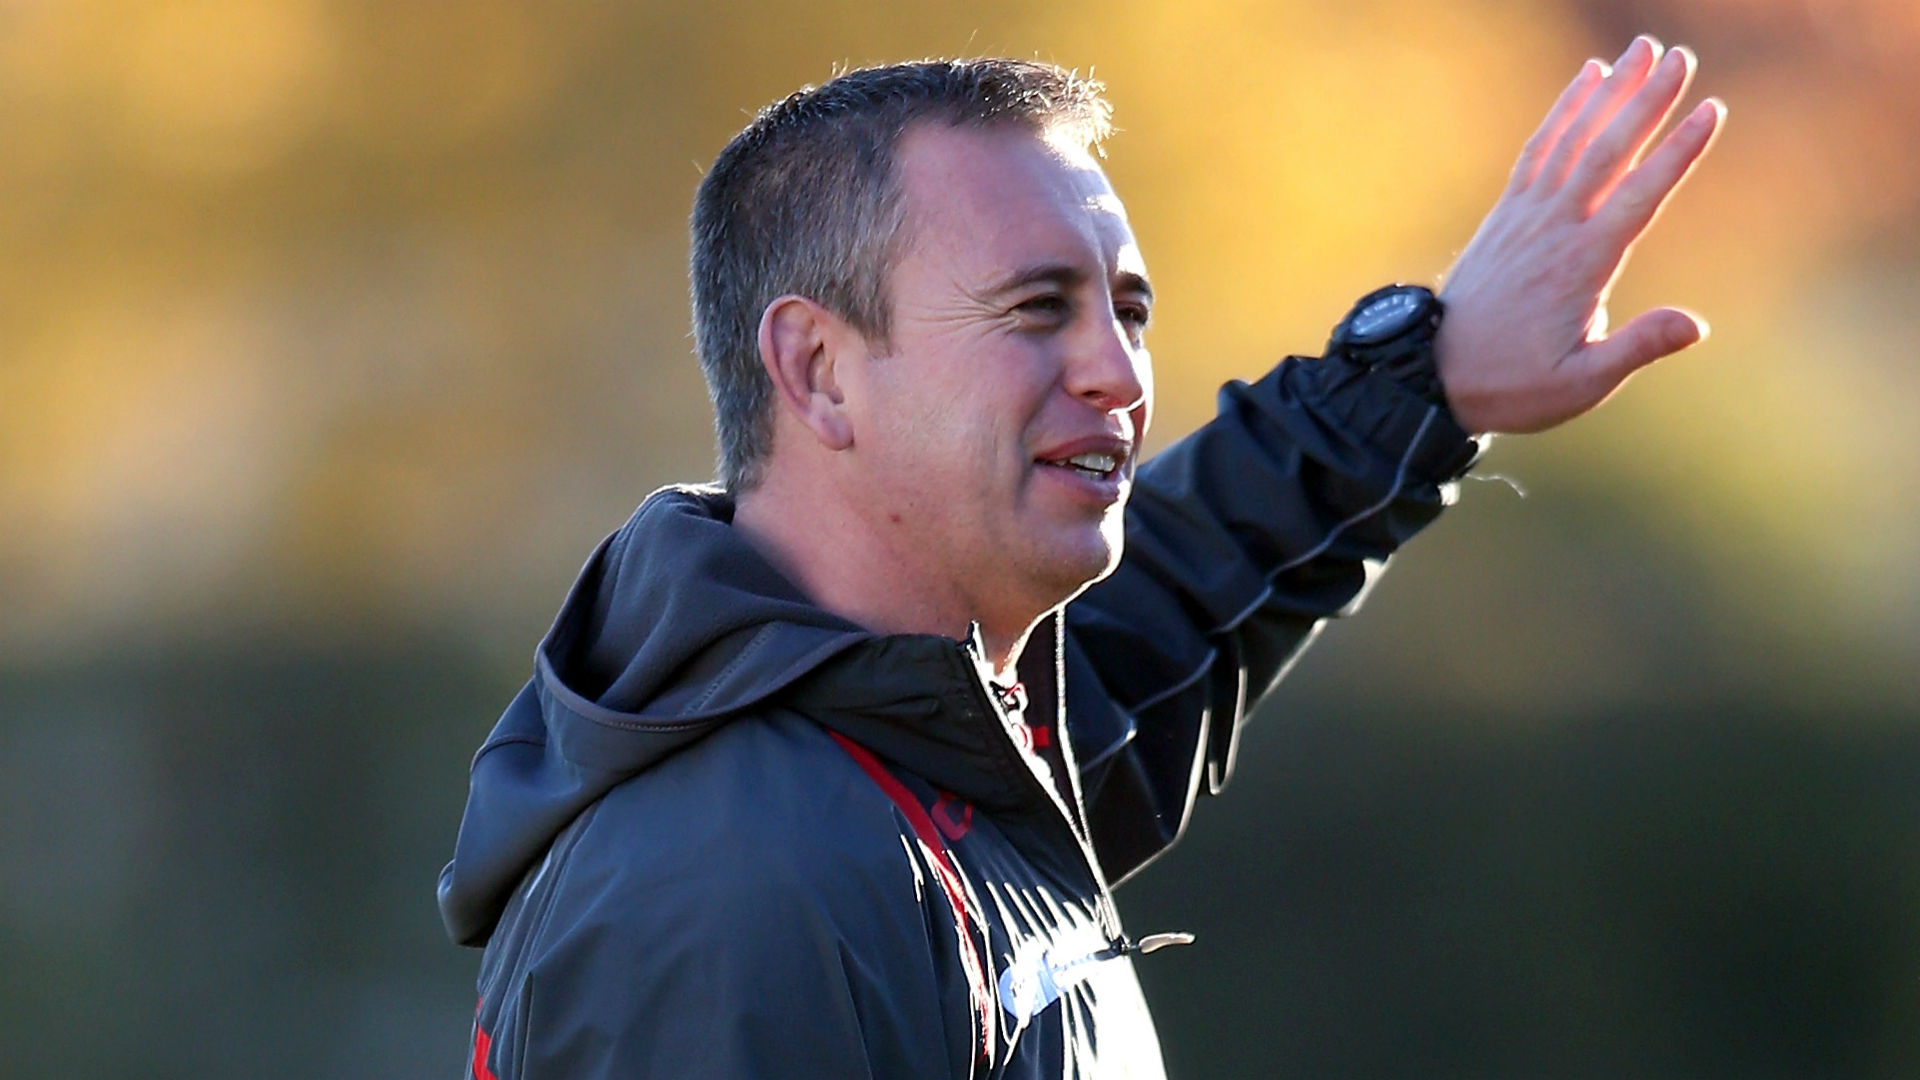 Catalans Dragons and Steve McNamara have agreed to a new deal that will keep him at the club until 2022.